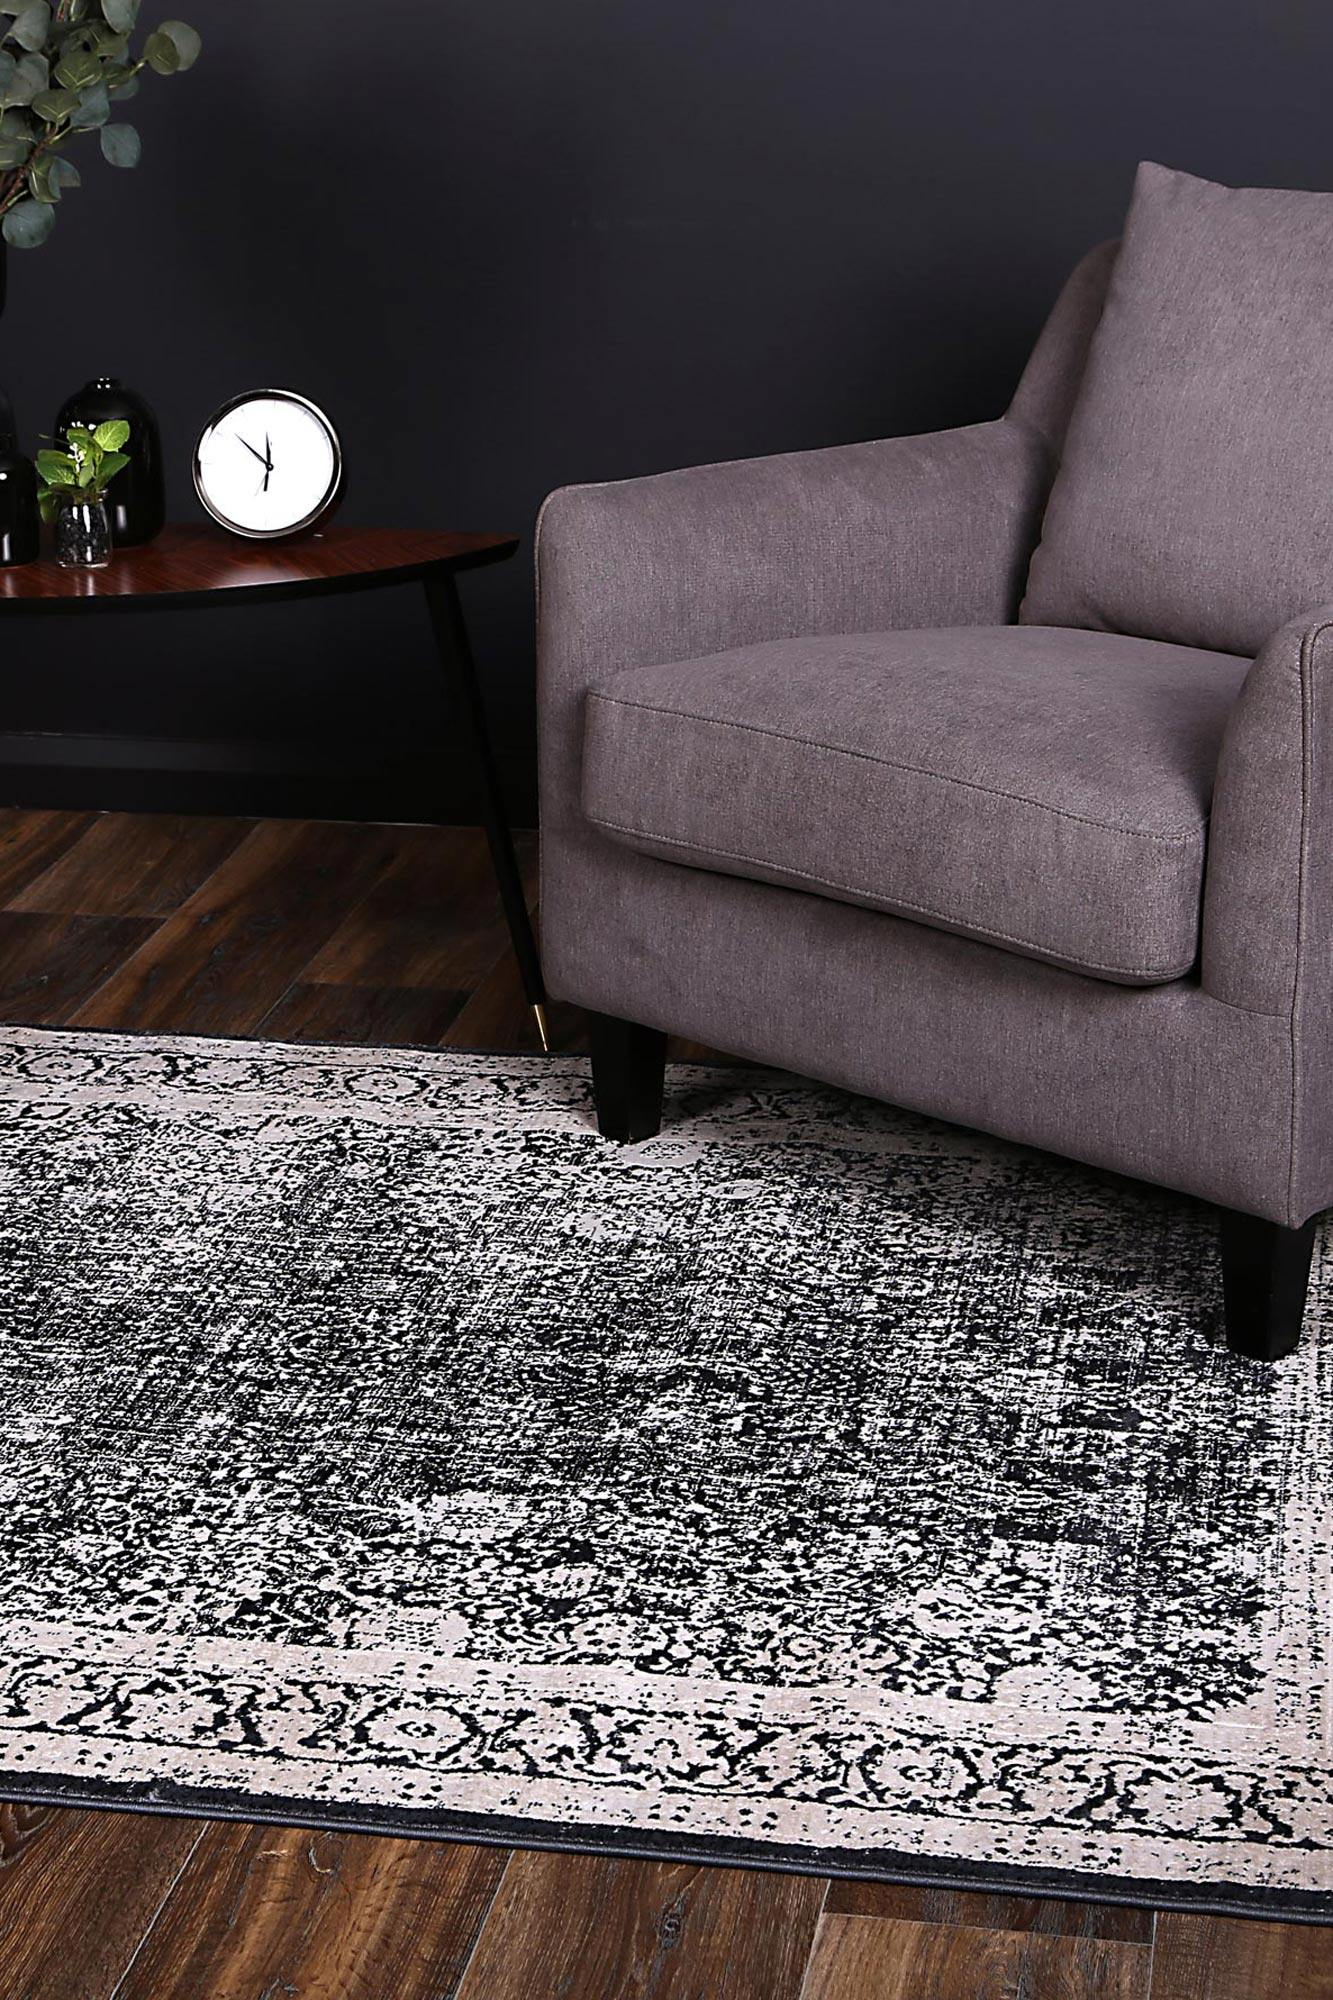 Dante Homa Navy Rug - The Rugs